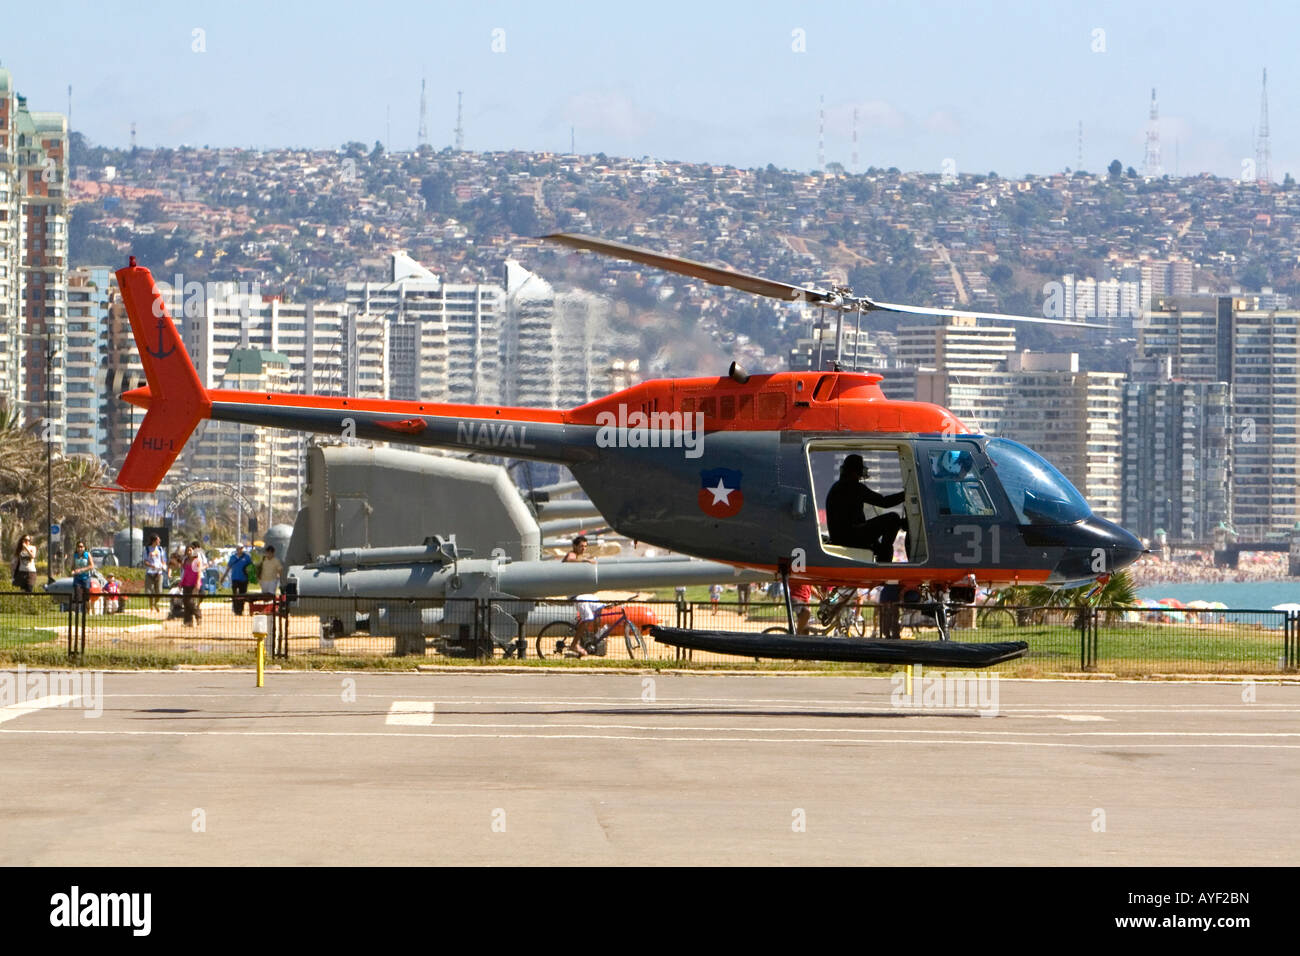 Naval helicopter of the armada de Chile taking off at Vina del Mar Chile - Stock Image